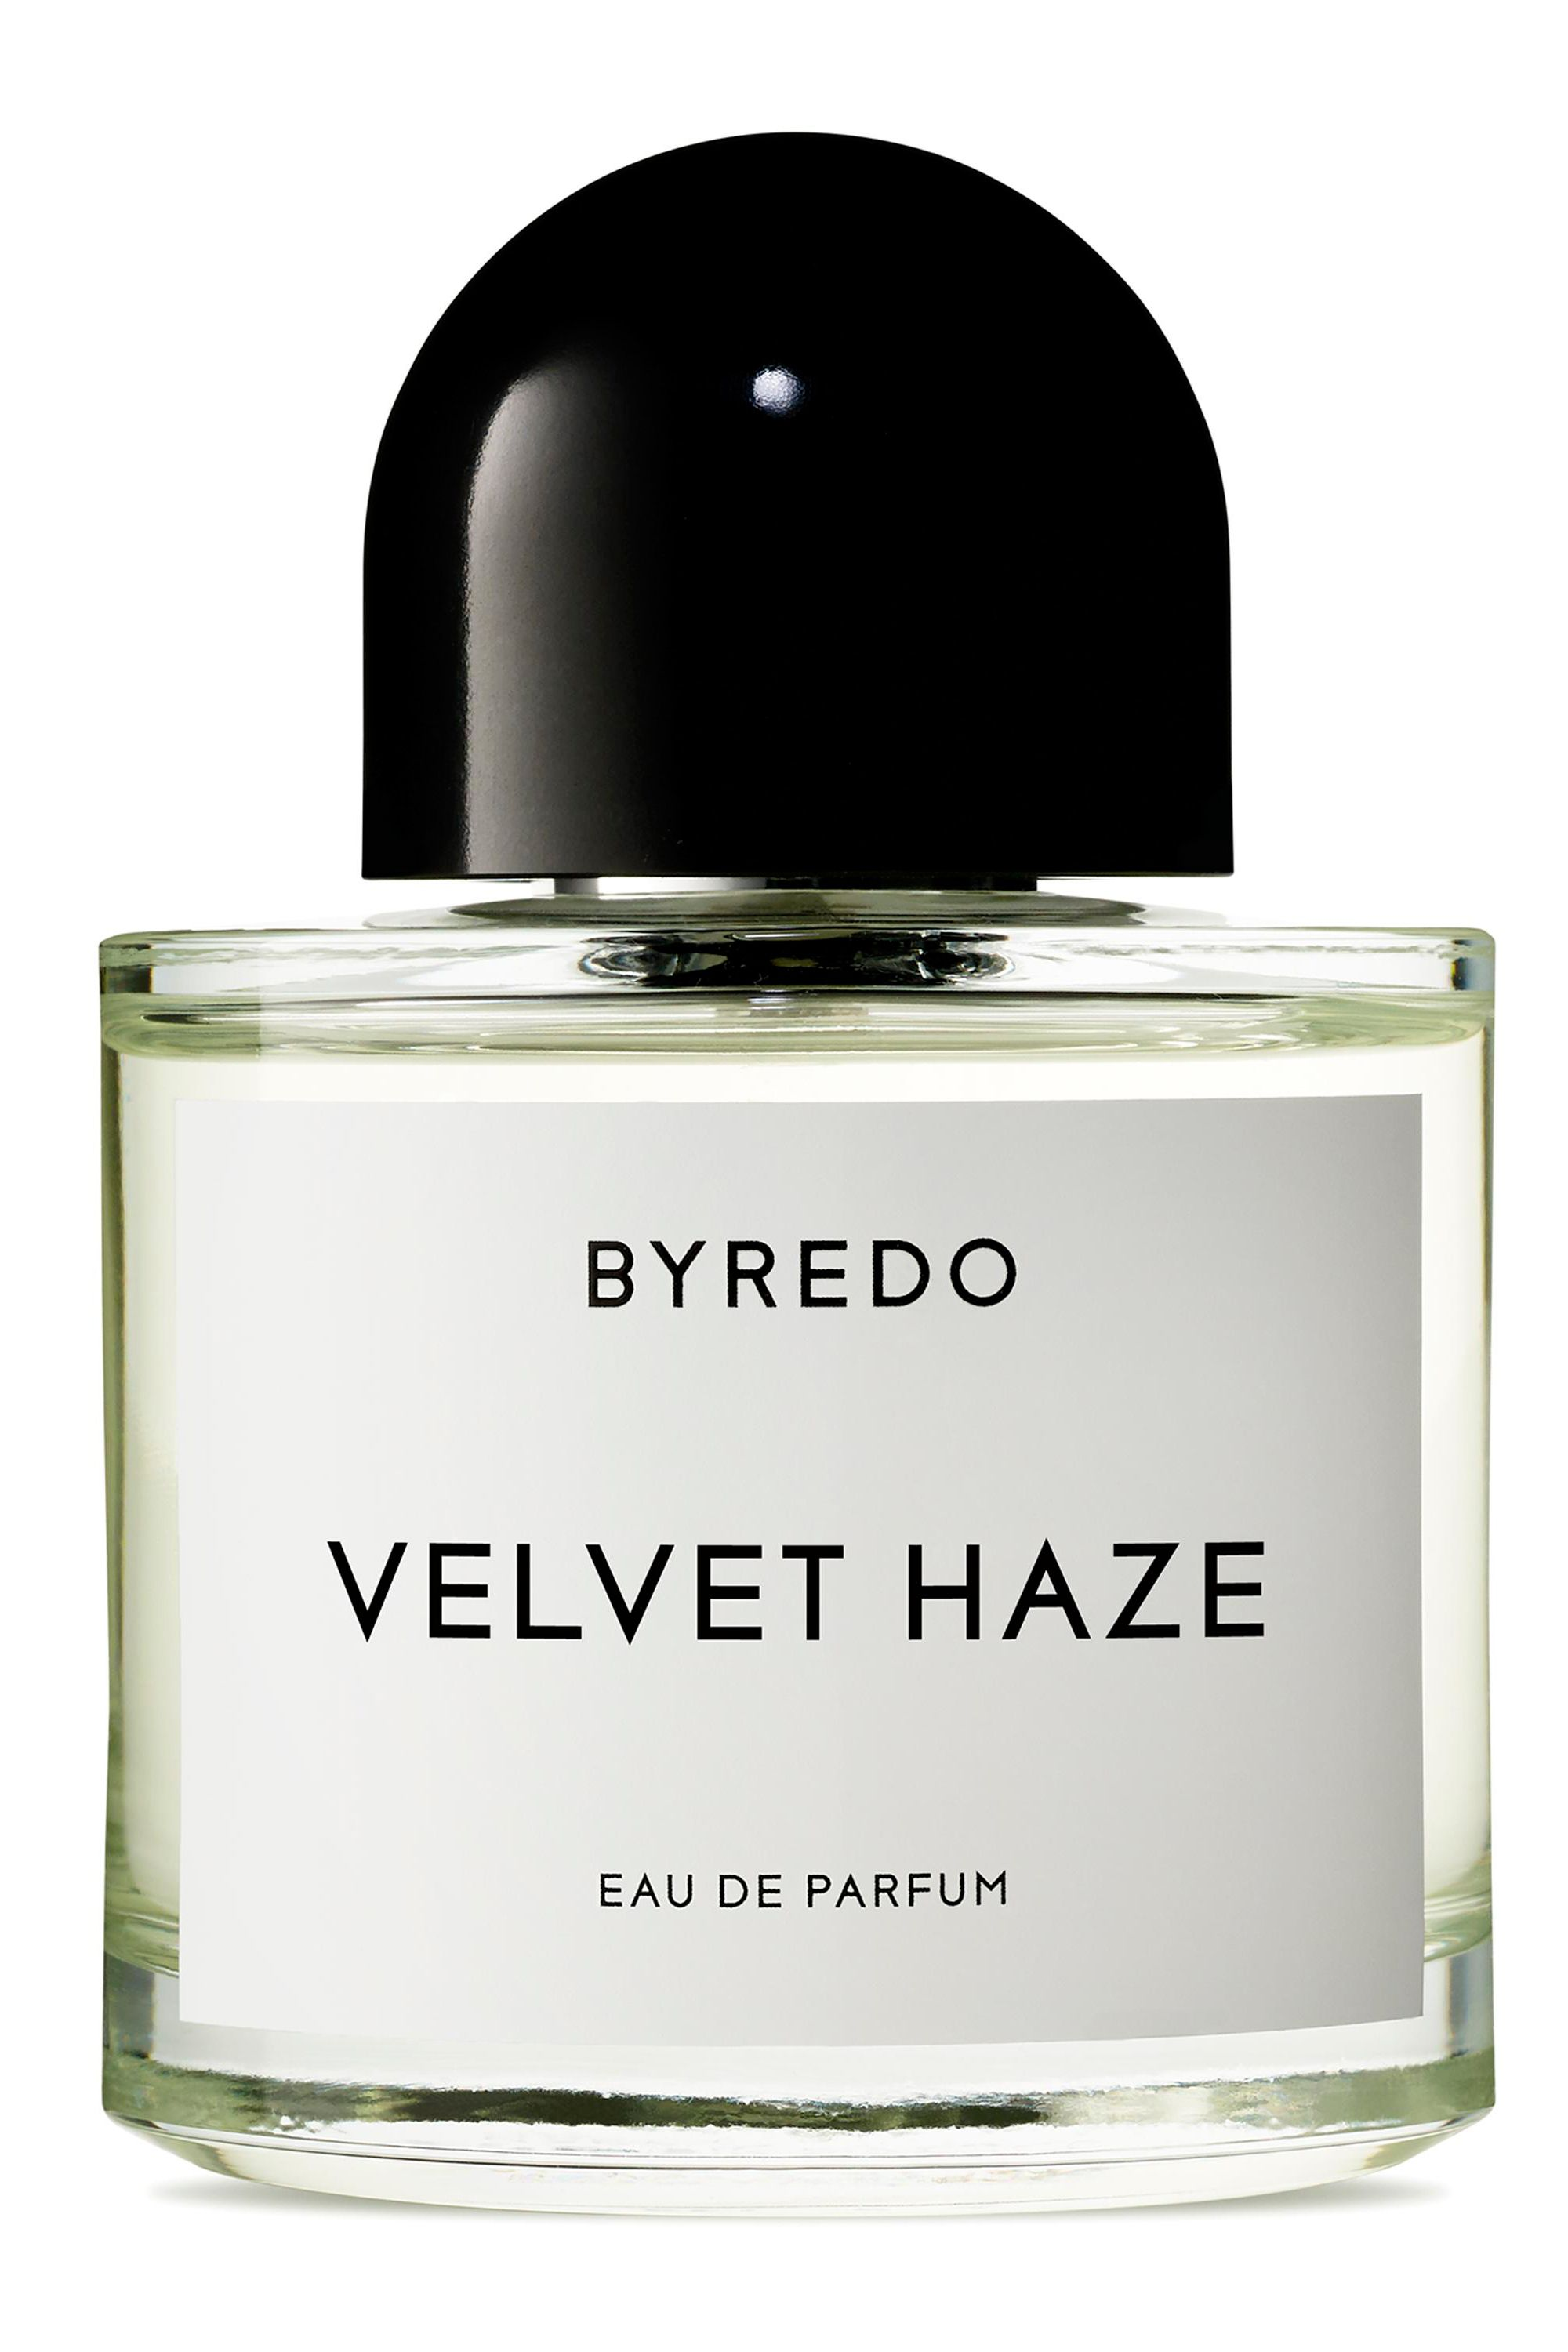 30c3dfe0ddc7 Best Women s Perfume 2019 - 27 fragrances you ll fall in love with at first  spritz